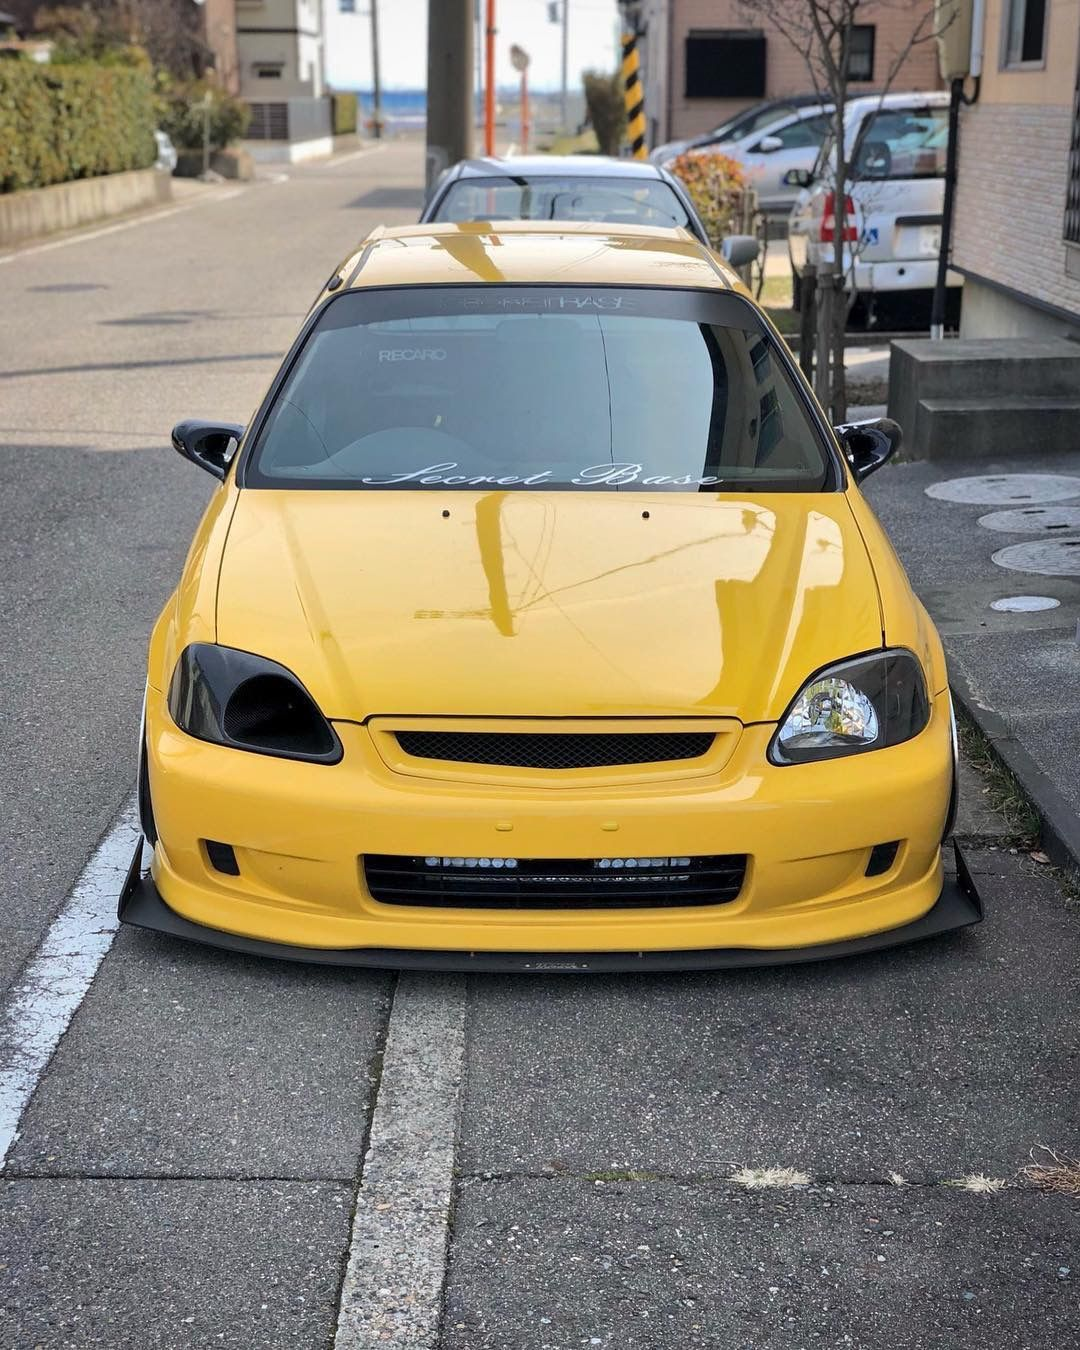 Ek9 The First Civic Type R And The Most Beautiful For All Of Them Honda Civic Coupe Honda Civic Vtec Honda Civic Ex